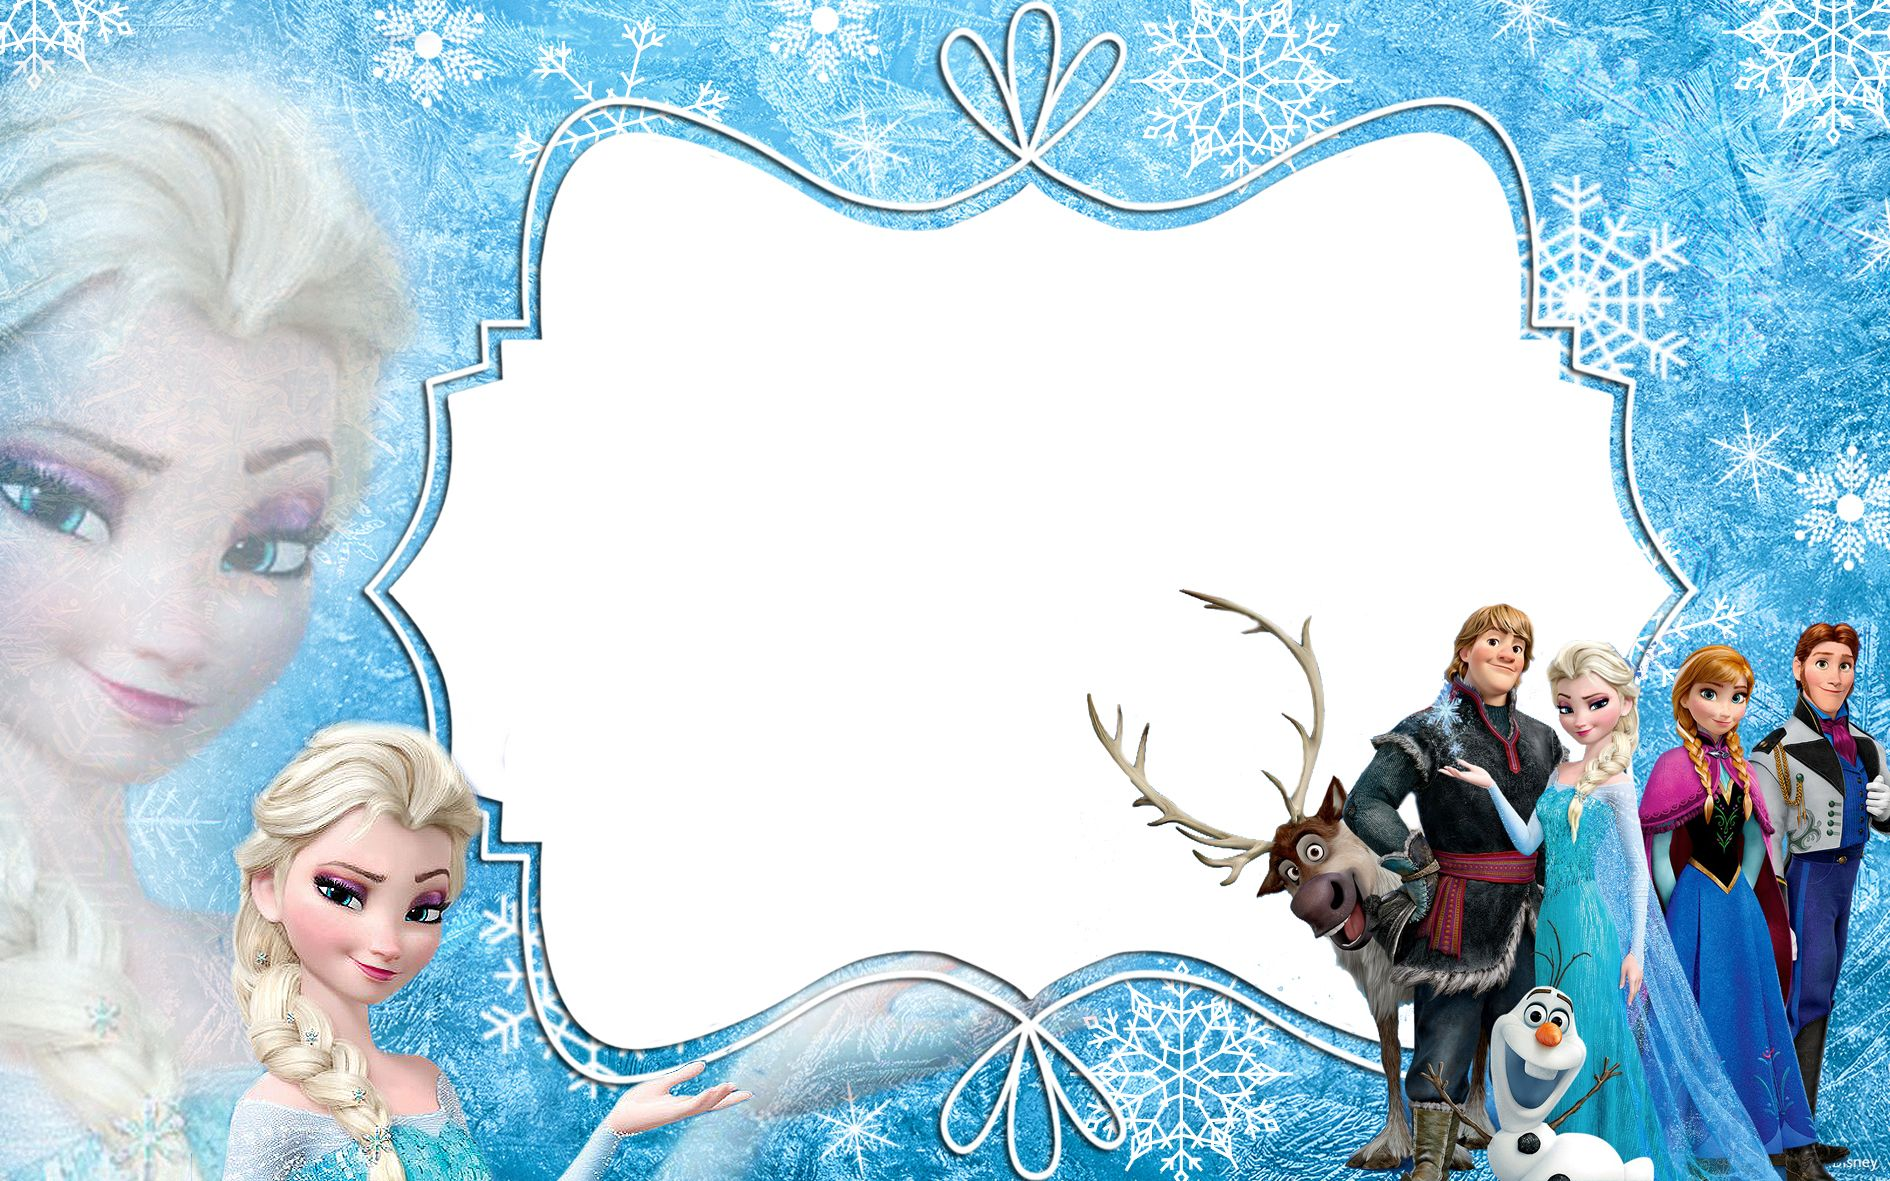 Frozen Photos Download Frozen Wallpapers Download Free Frozen